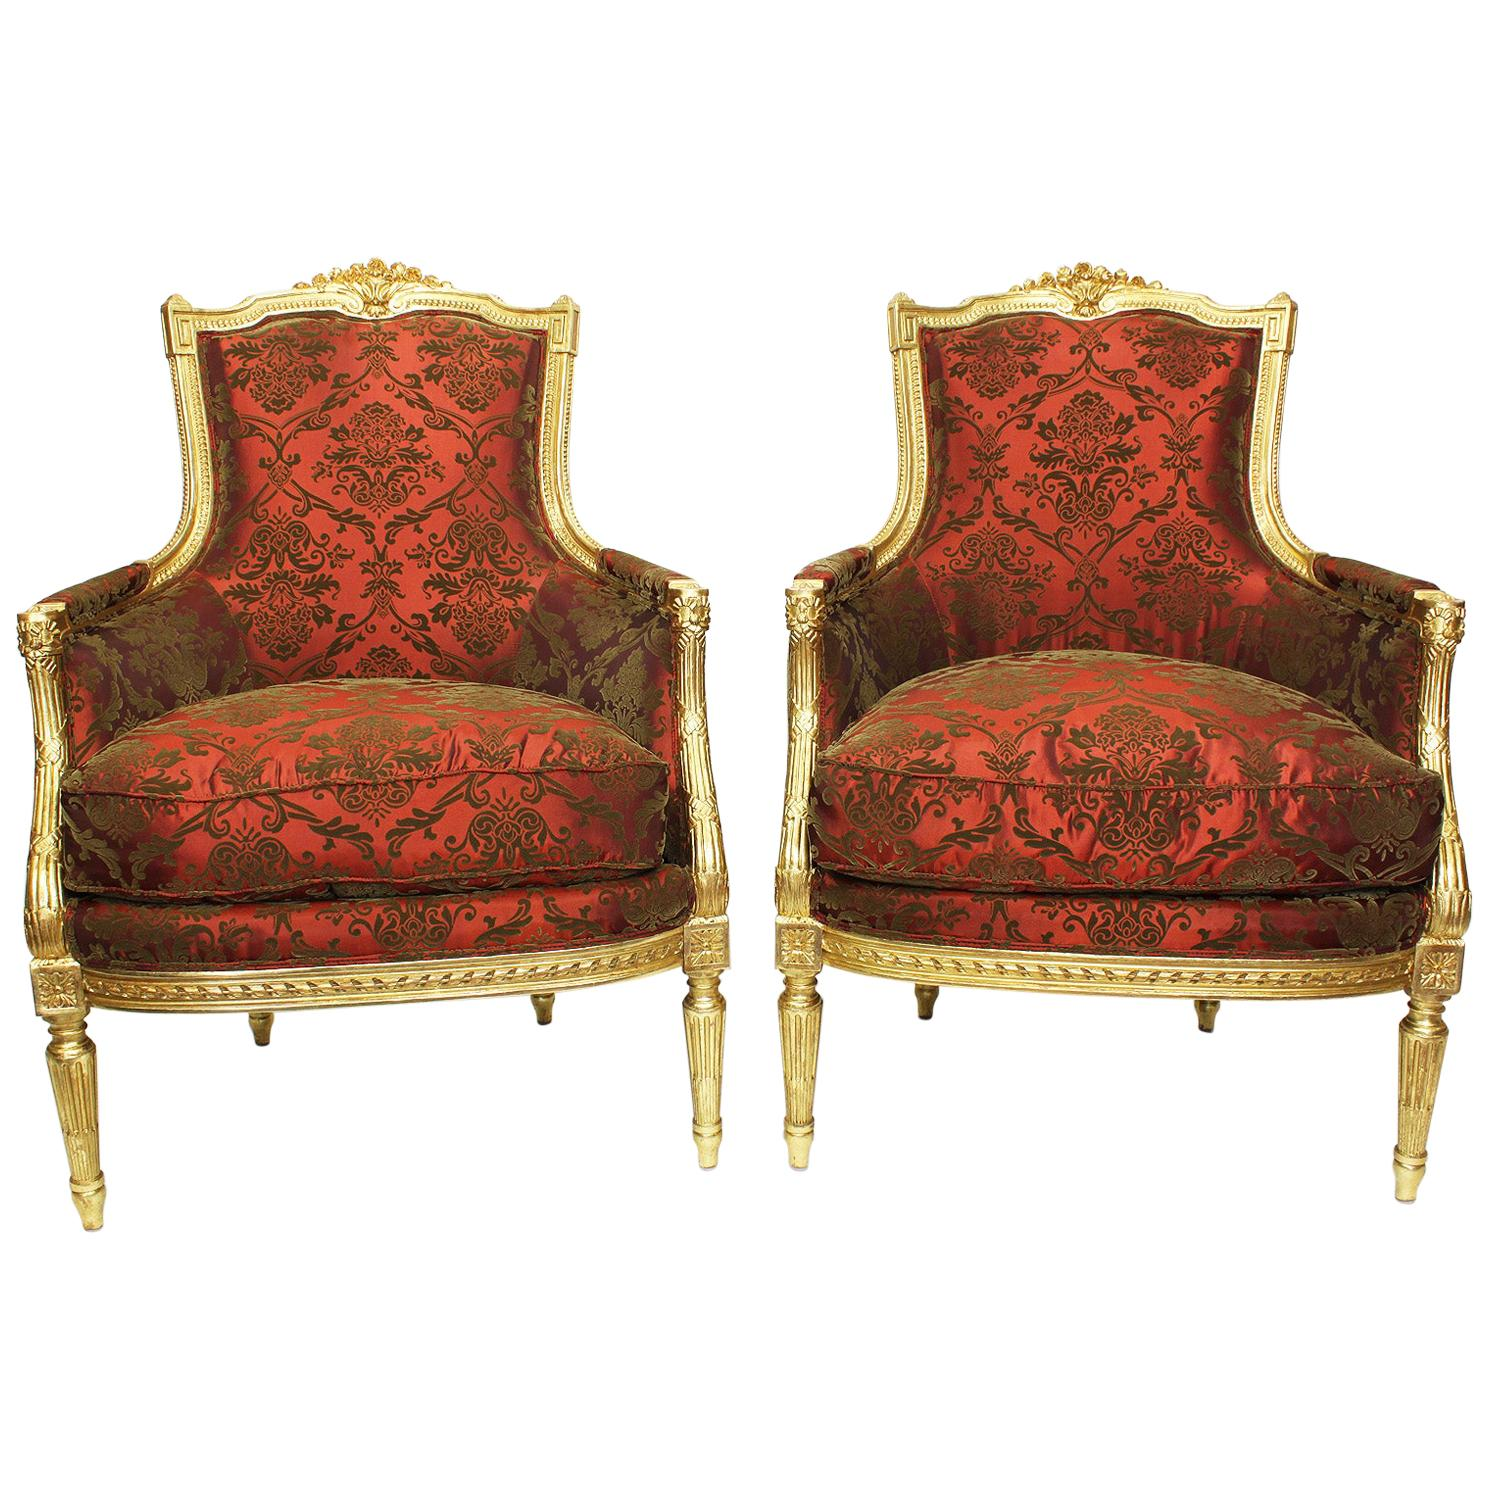 Fine Pair of French 19th-20th Century Louis XVI Style Giltwood Carved Armchairs